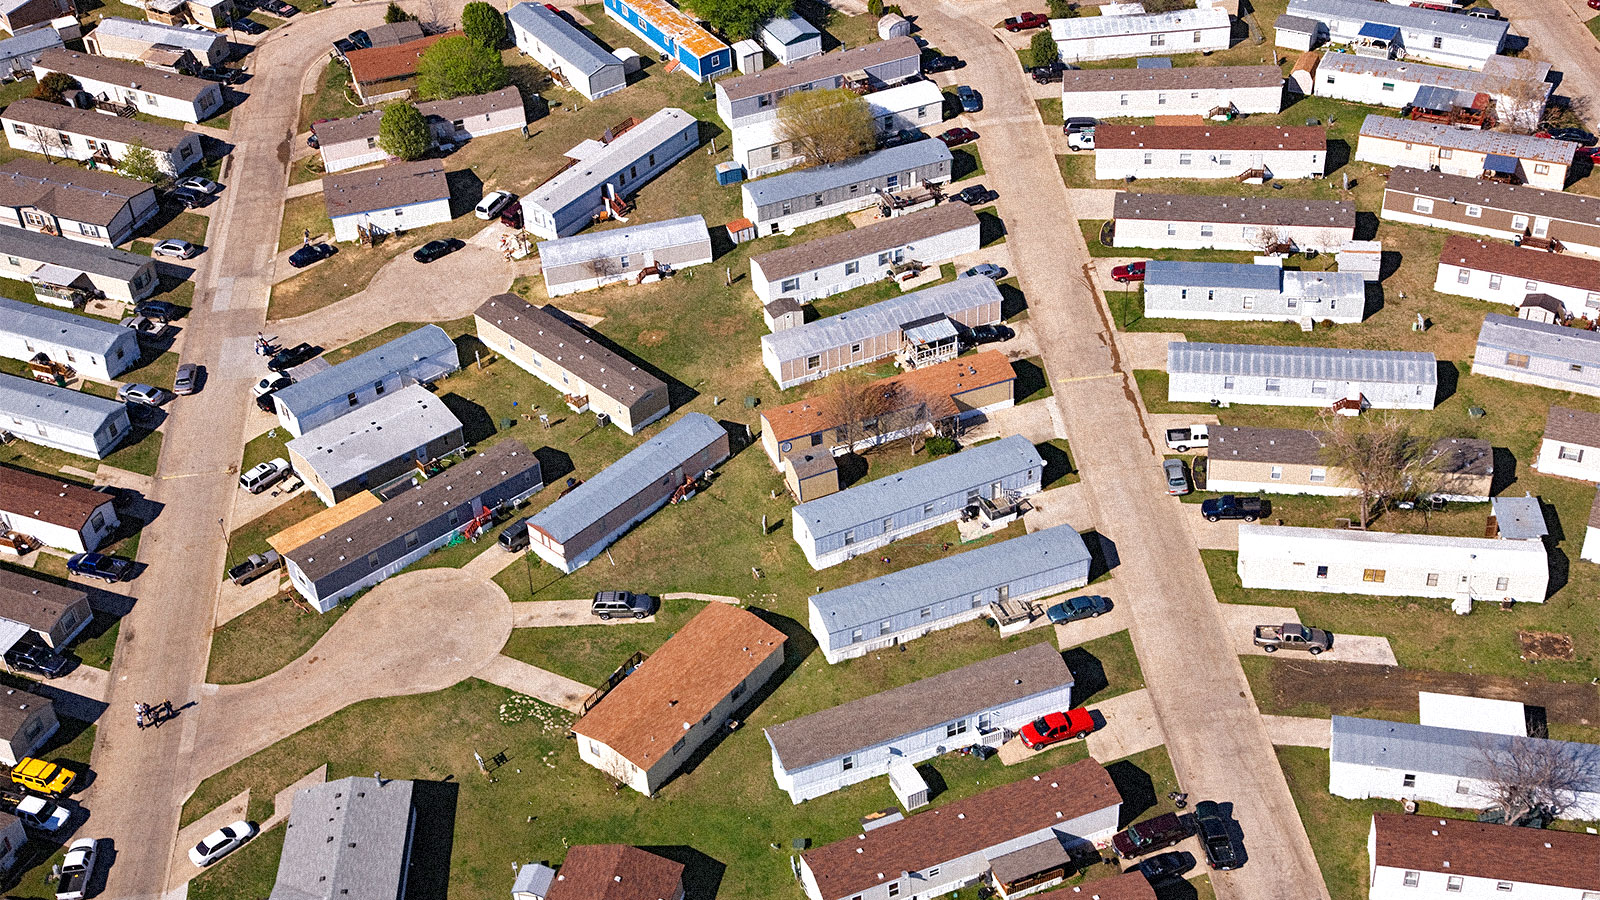 Aerial view of a mobile home park in Texas